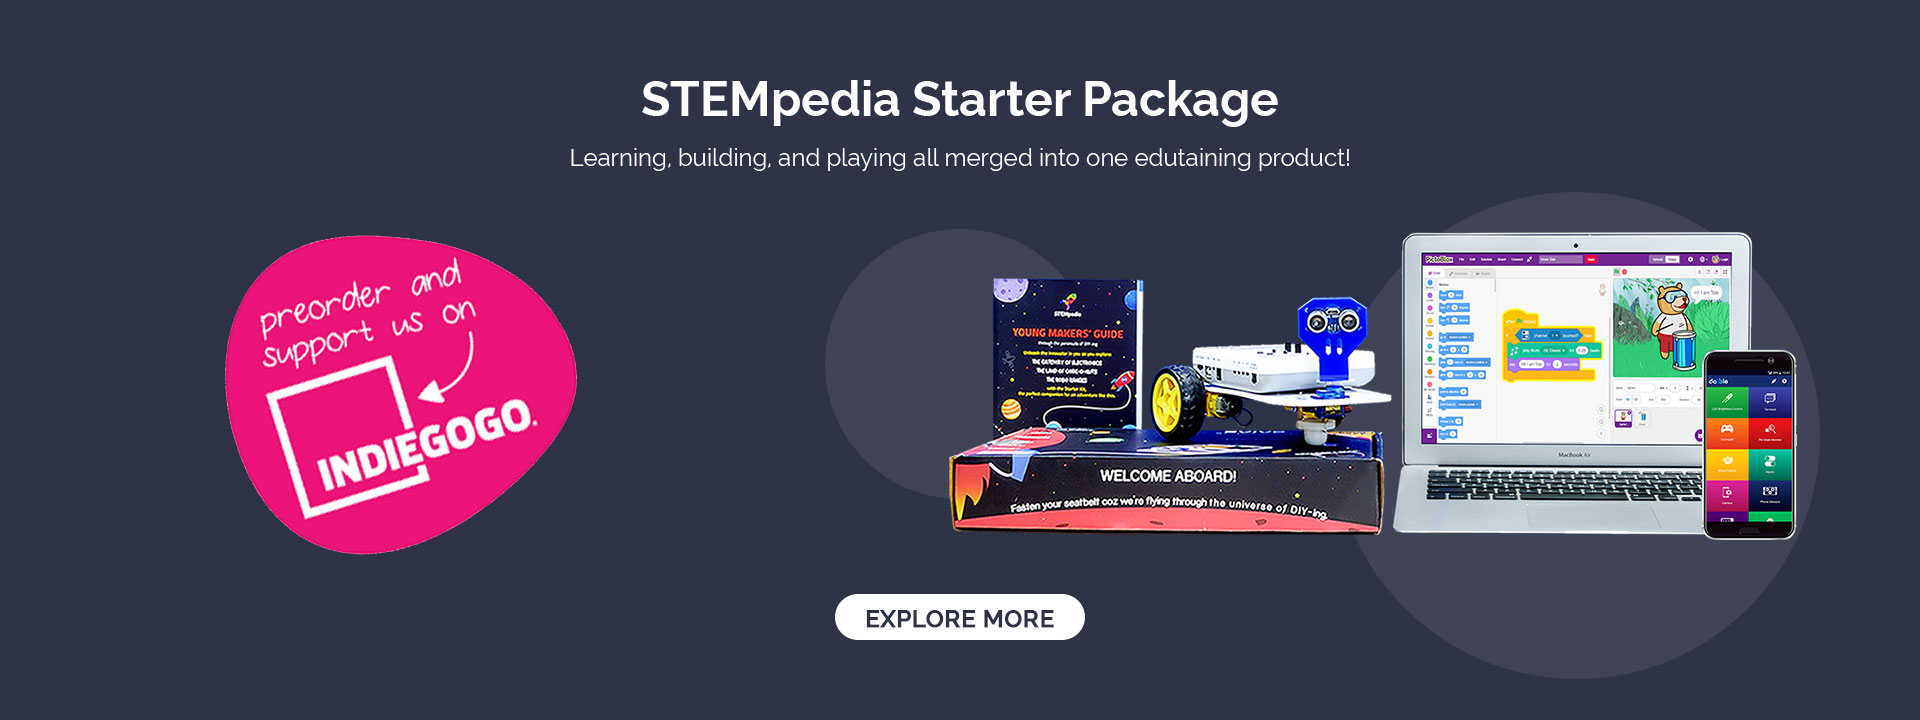 STEMpedia-Starter-Package-Launched